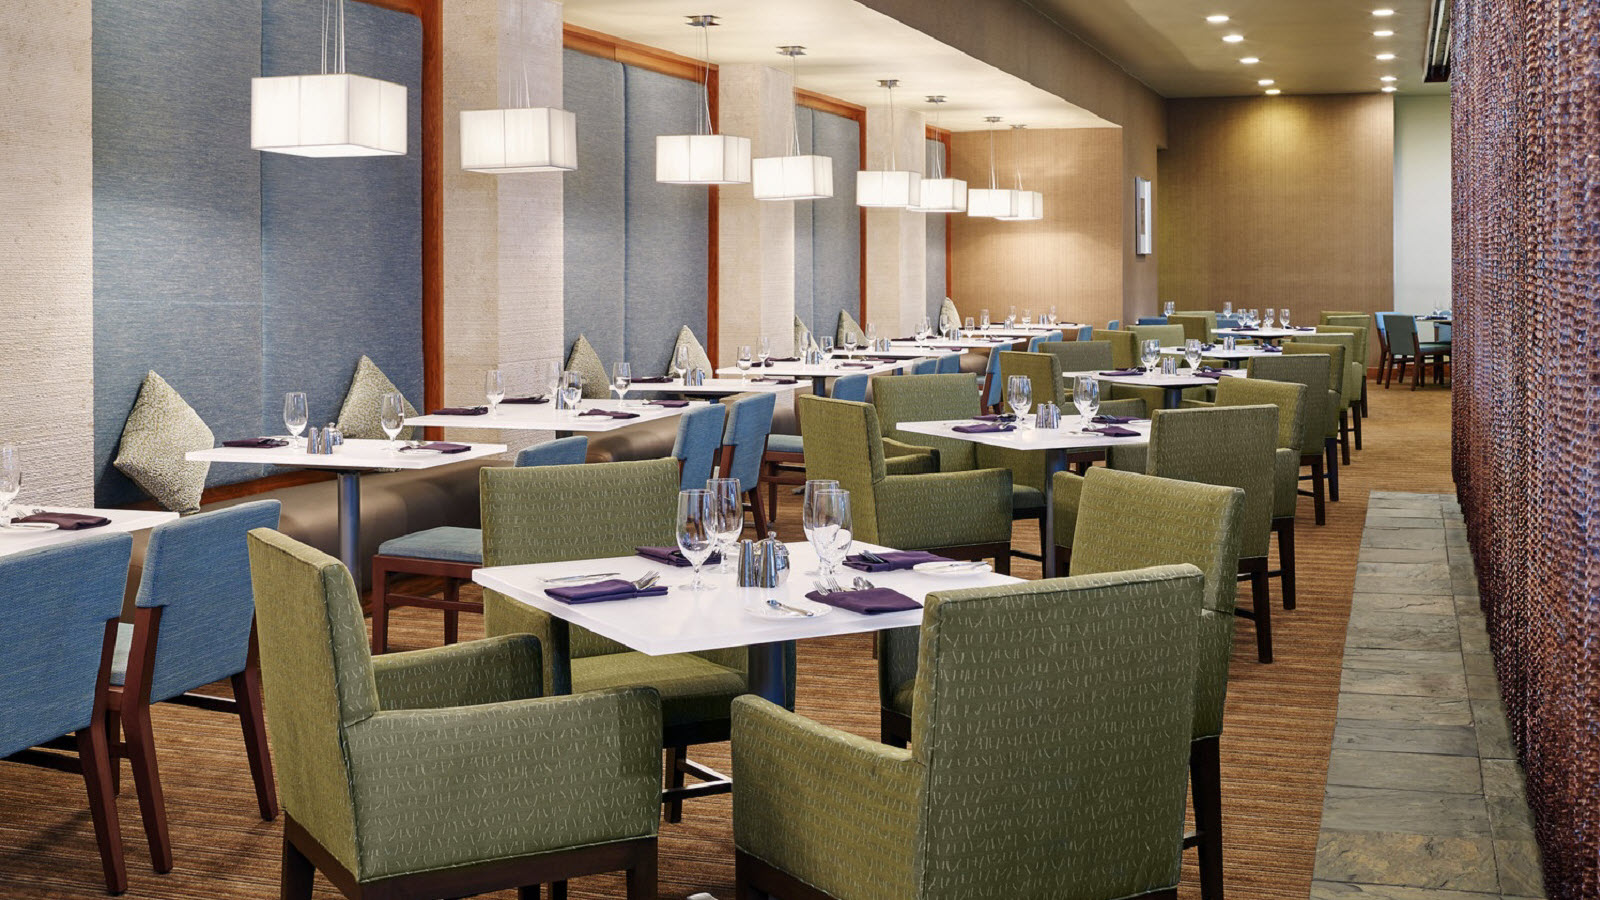 https://www.hotelsbyday.com/_data/default-hotel_image/0/1161/the-westin-atlanta-airport-cecilias-southern-table.jpg